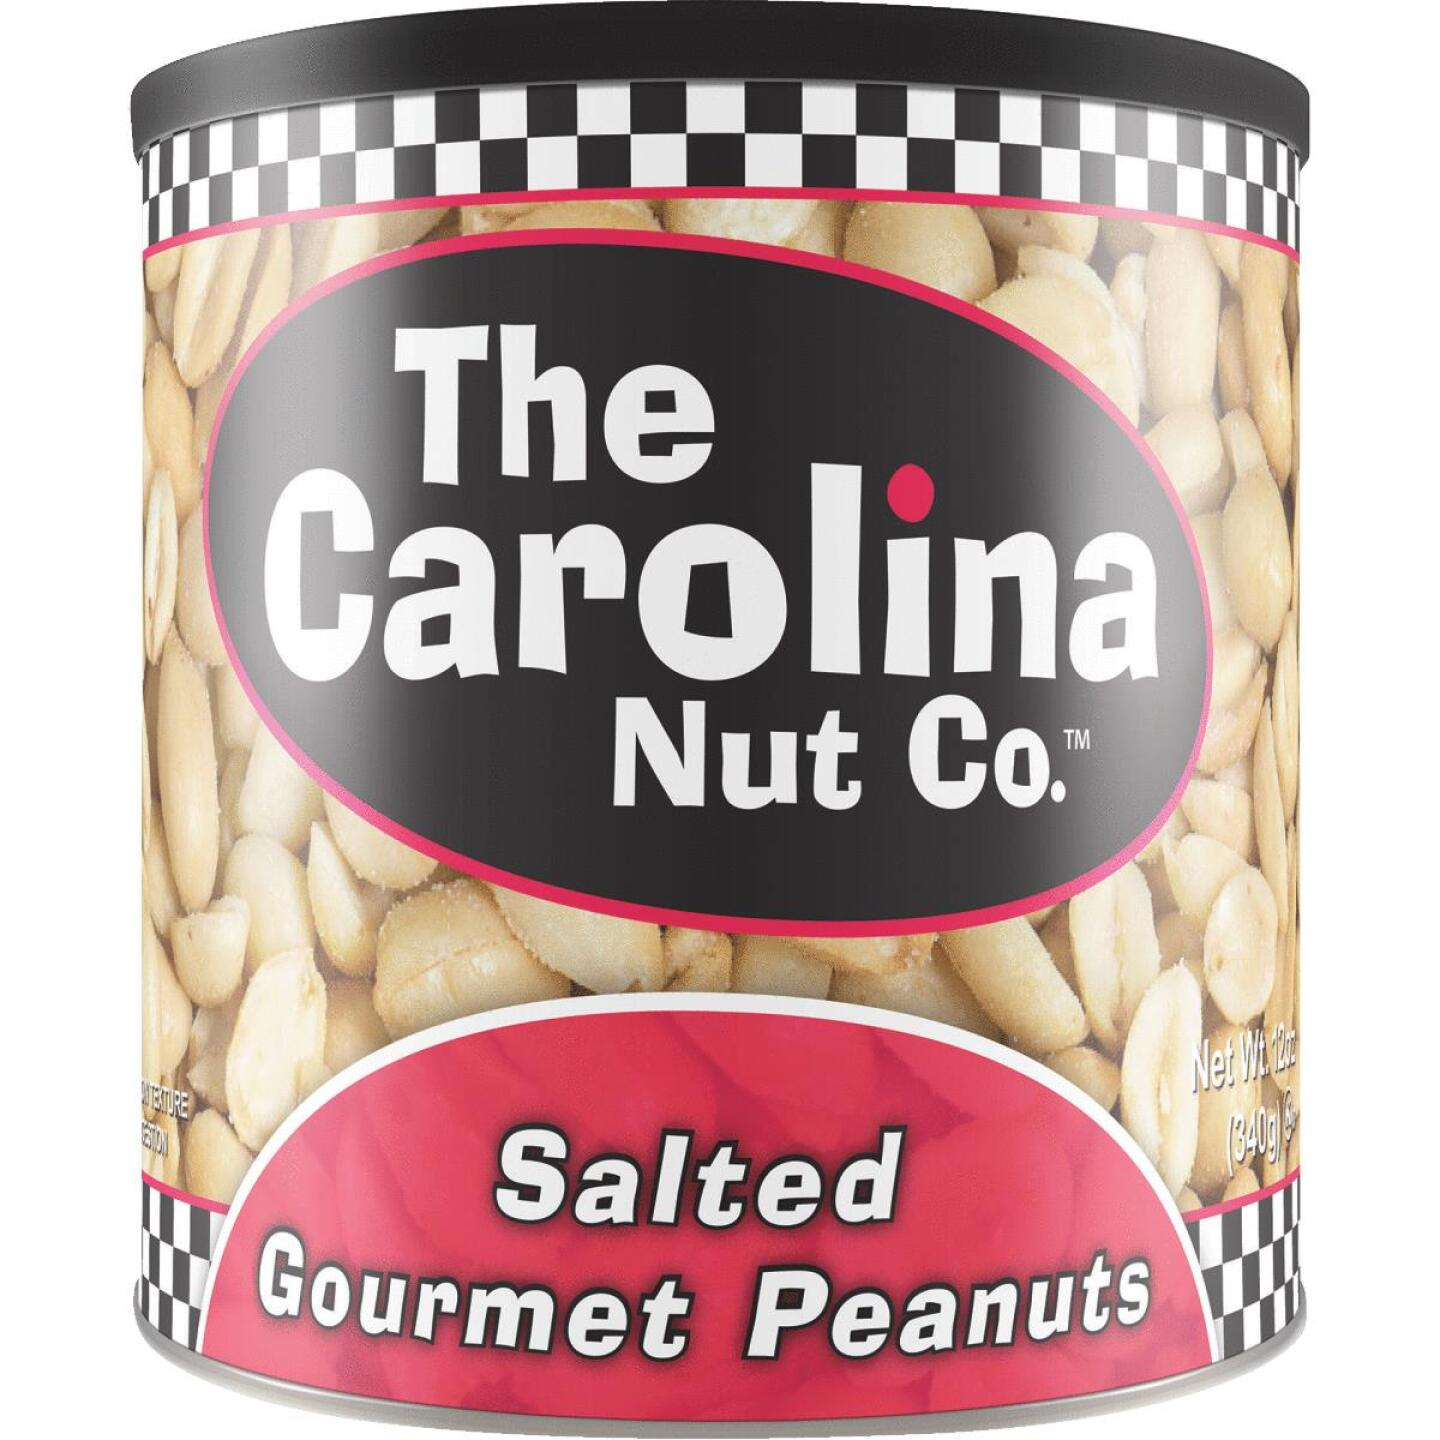 The Carolina Nut Company 12 Oz. Salted Peanuts Image 1